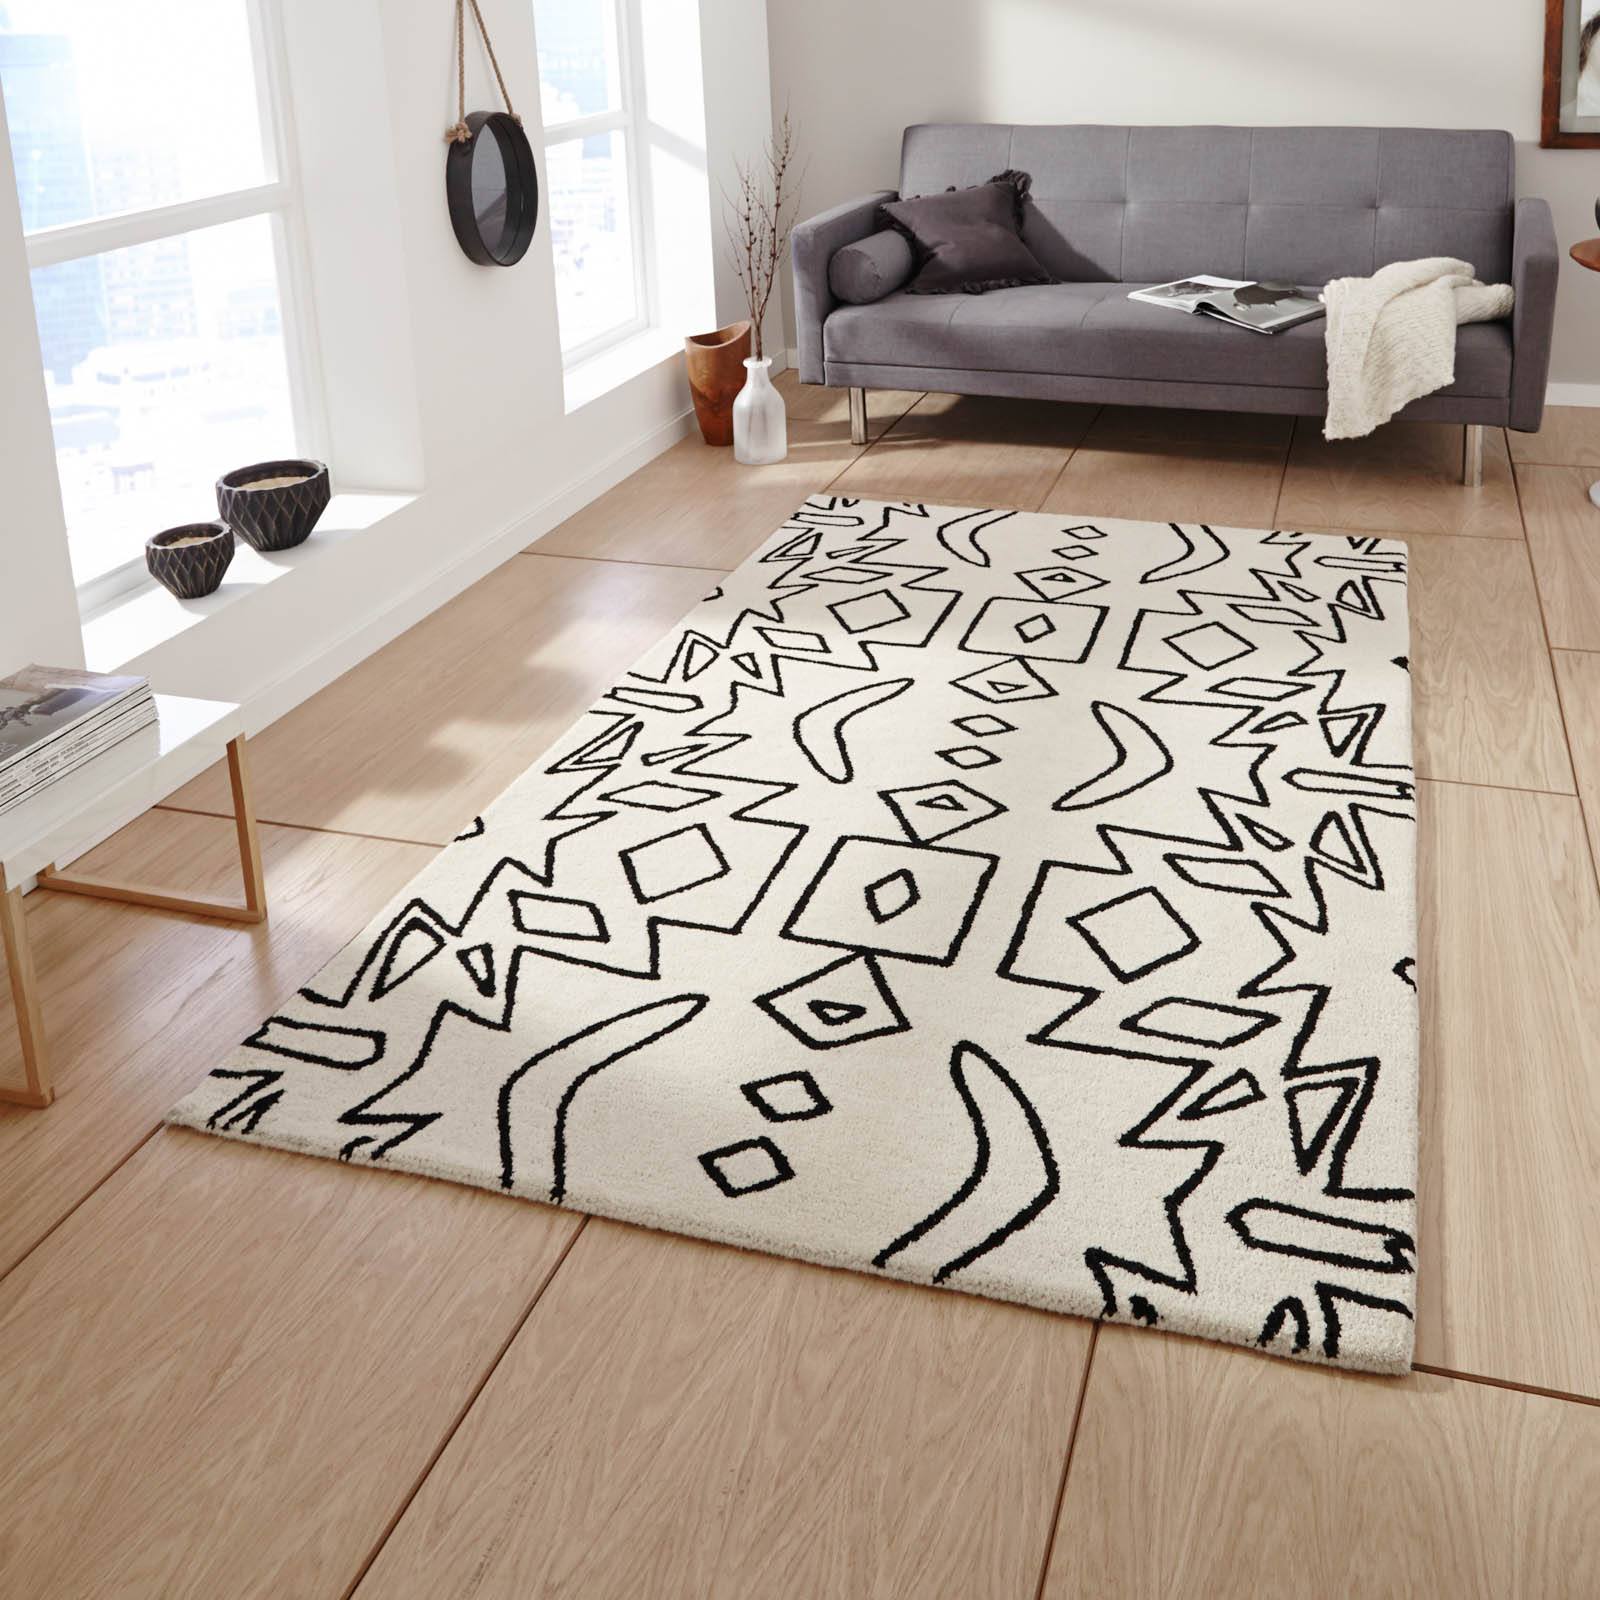 Spectrum SP41 Rugs in White Black